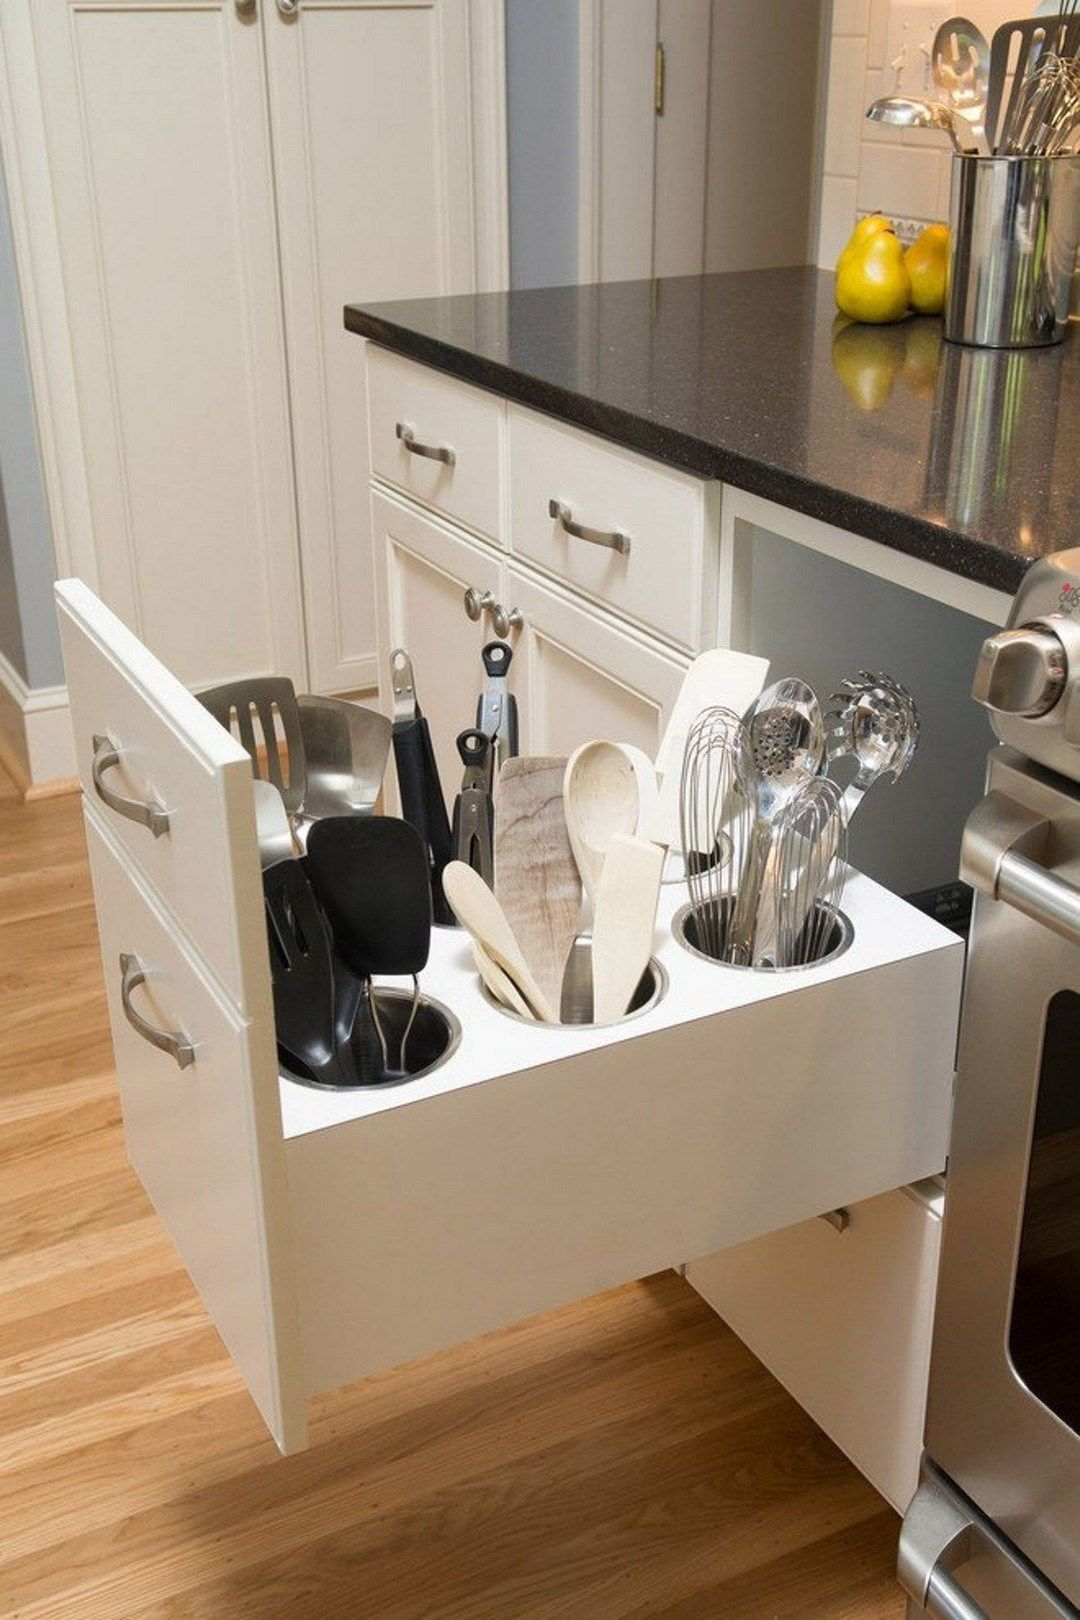 22 Creative Hidden Kitchen Storage Solutions #storagesolutions